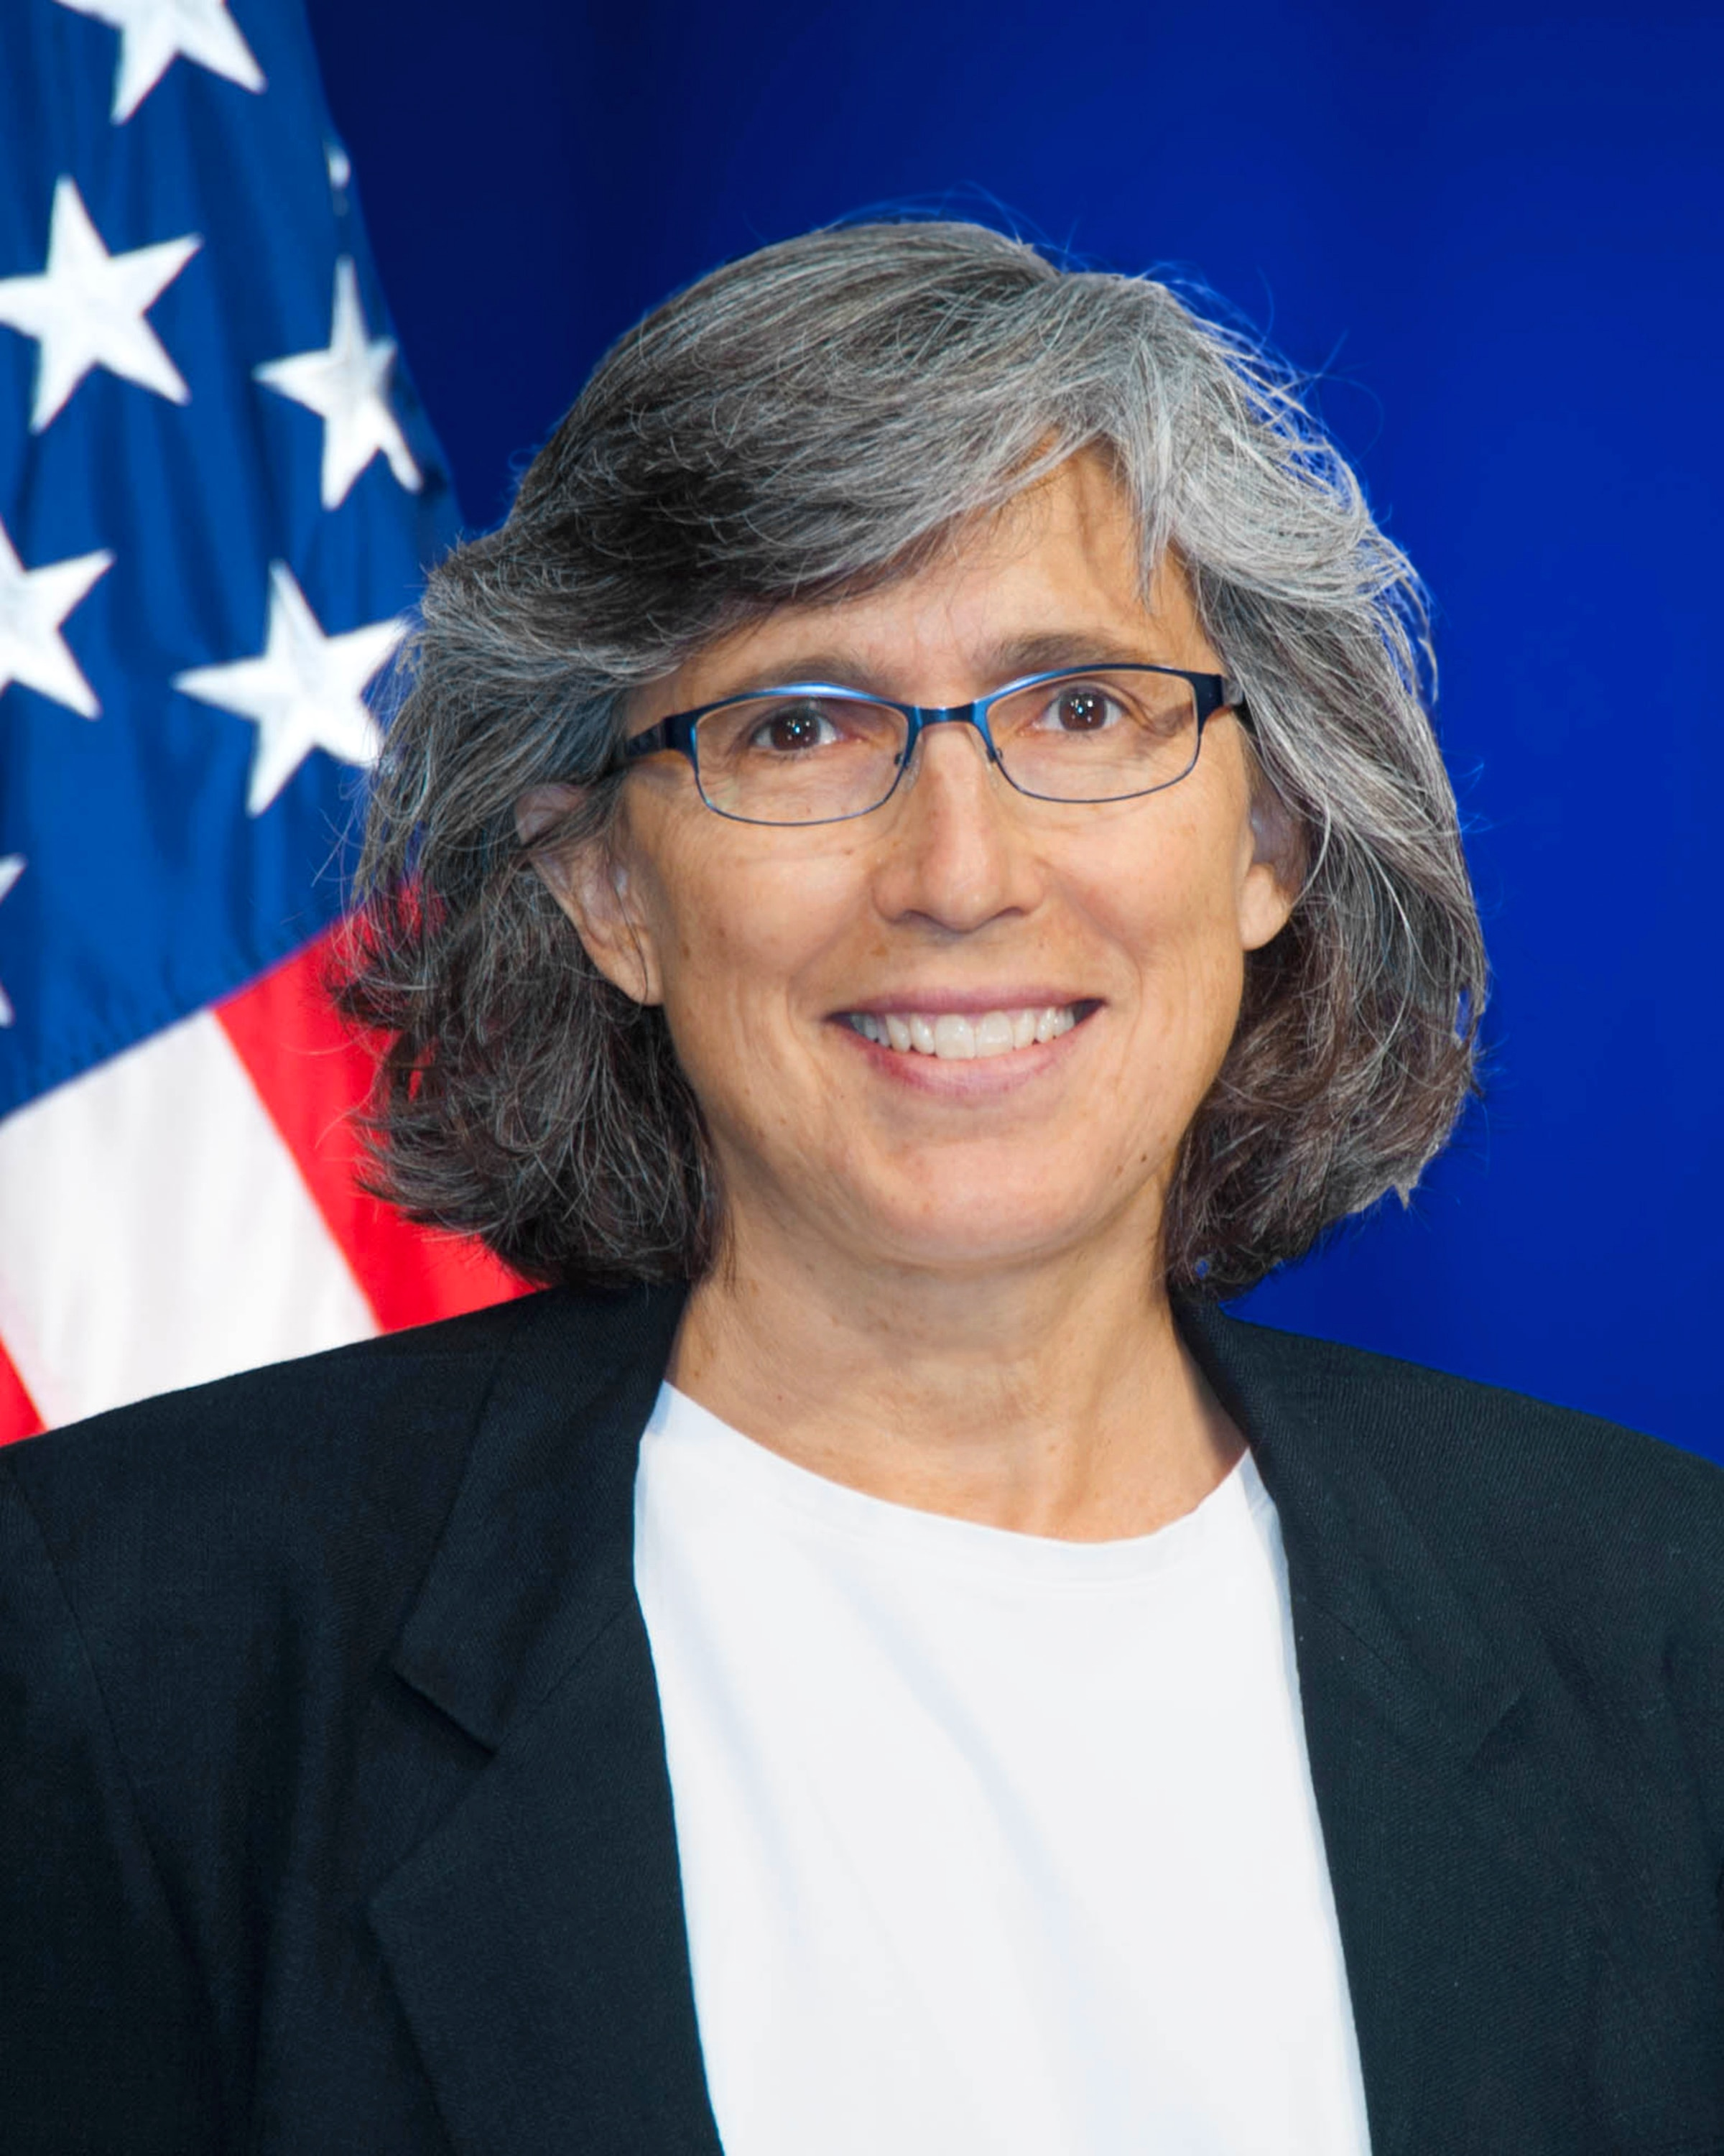 Dominica Gutierrez Executive Director [State Department Image]